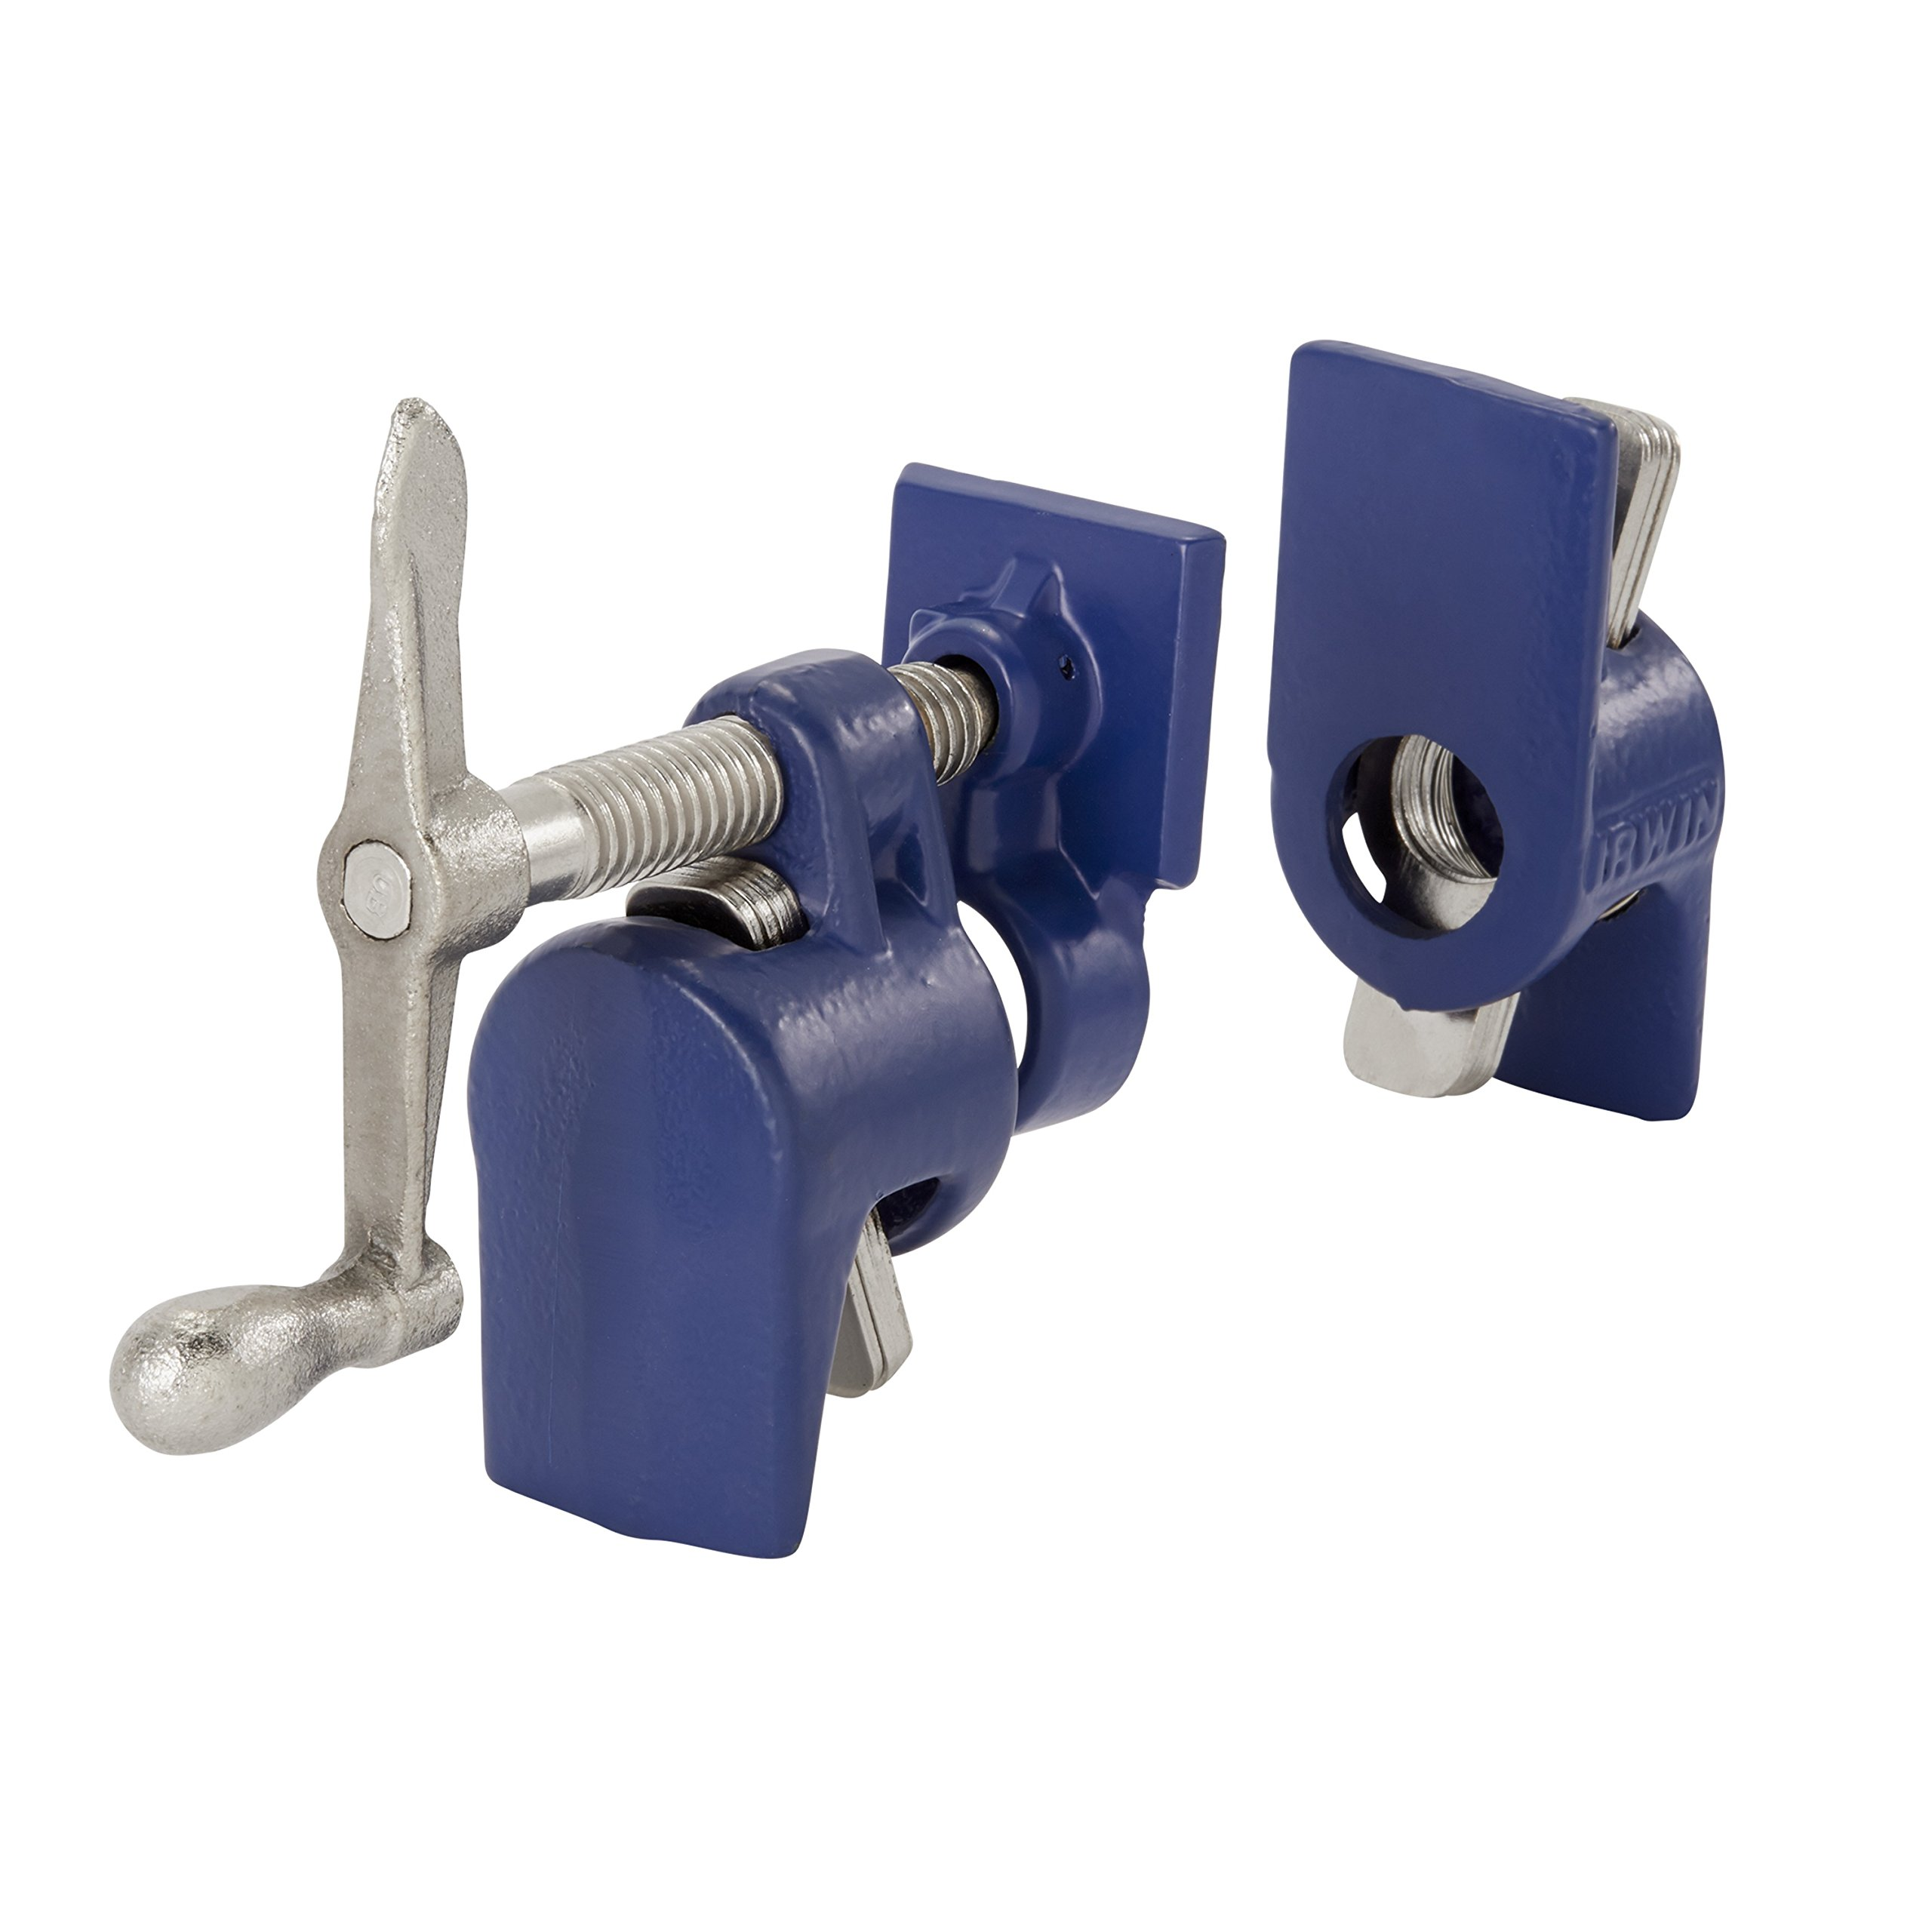 IRWIN QUICK-GRIP 3/4'' Pipe Clamp, 224134